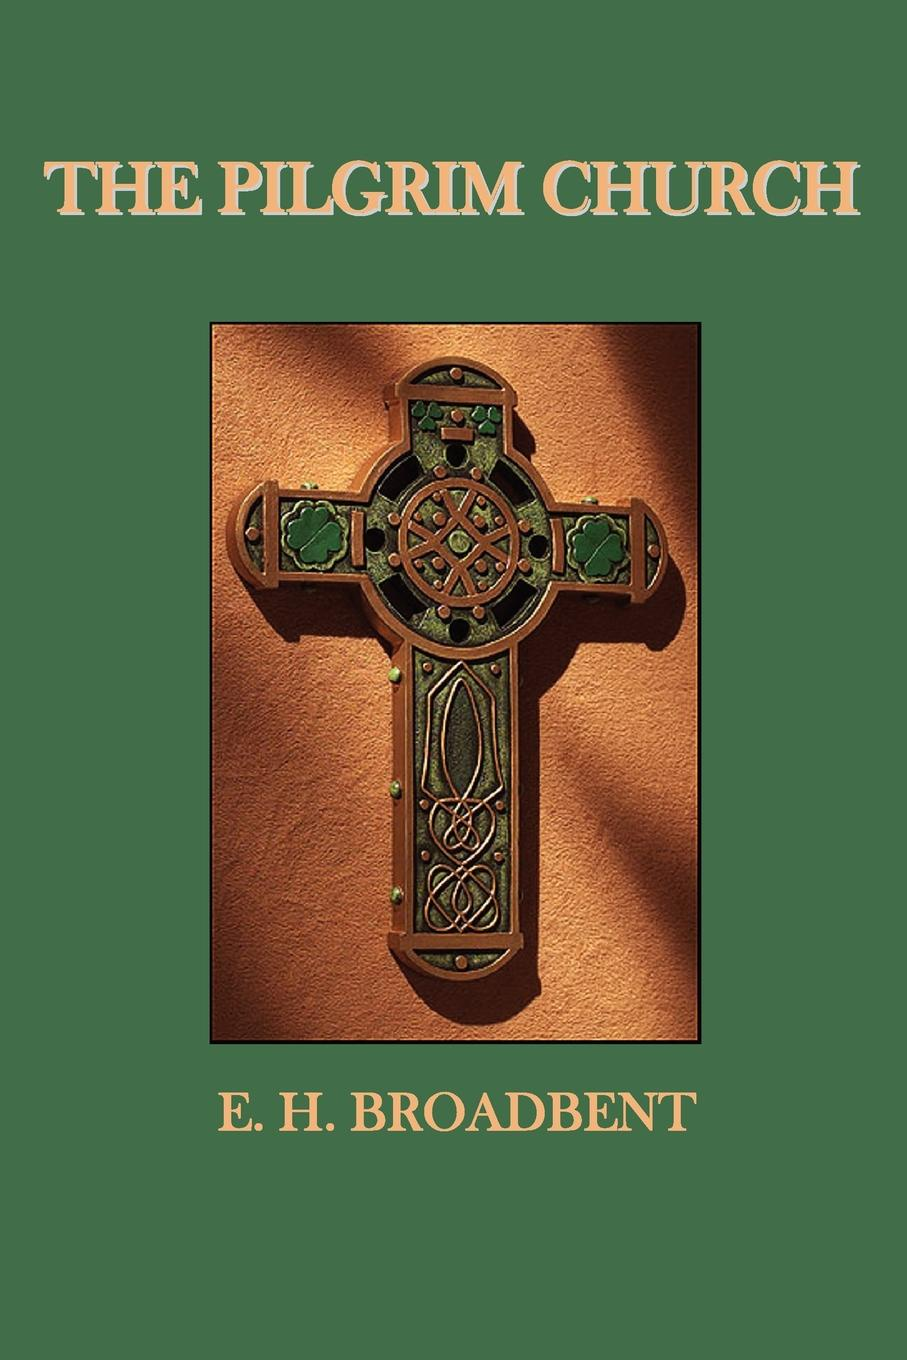 цены E. H. Broadbent The Pilgrim Church